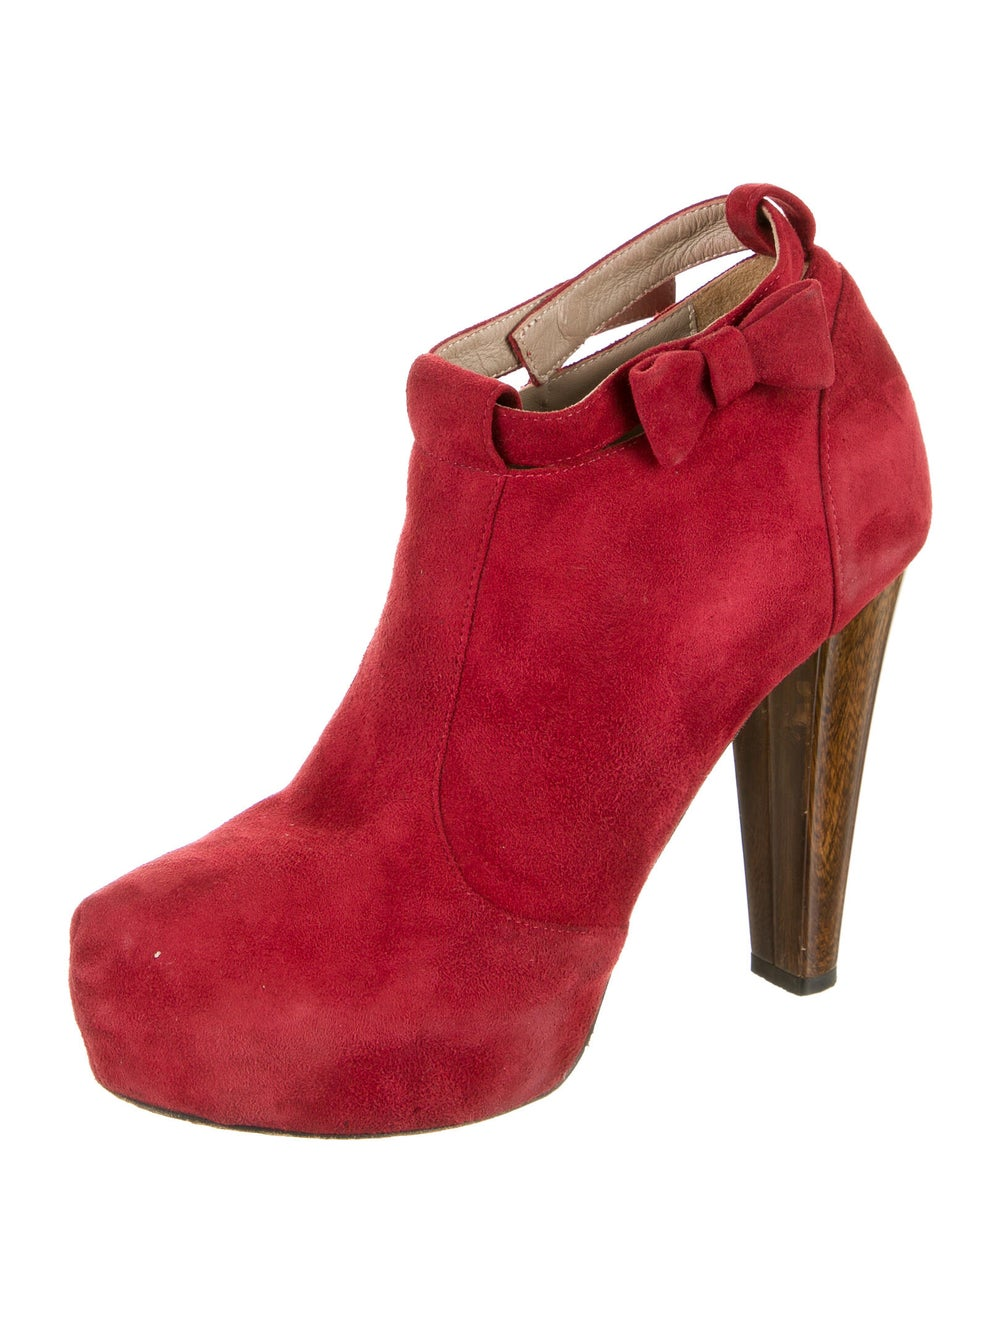 Tibi Suede Boots Red - image 2